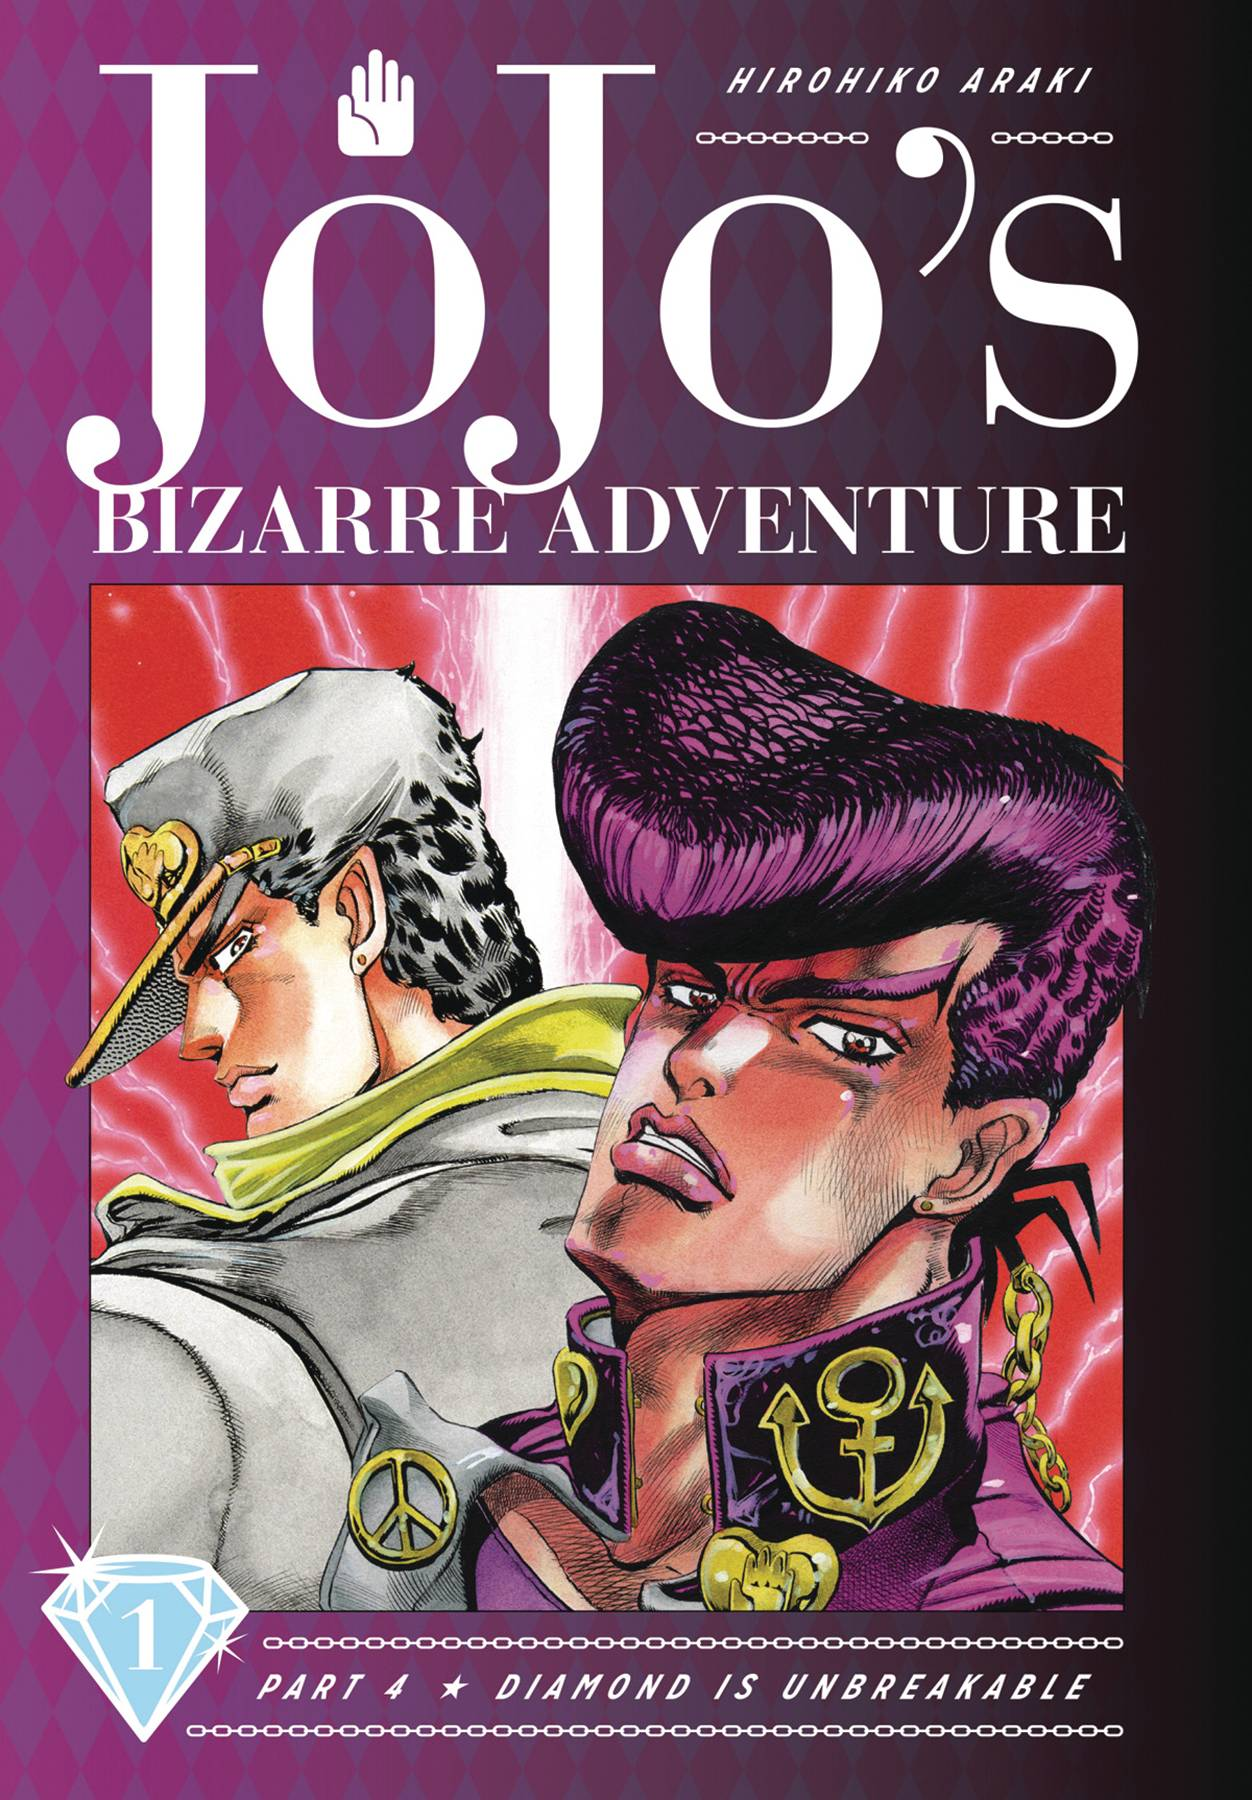 JoJo's Bizarre Adventure Part 4 Diamond is Unbreakable HC Vol 1